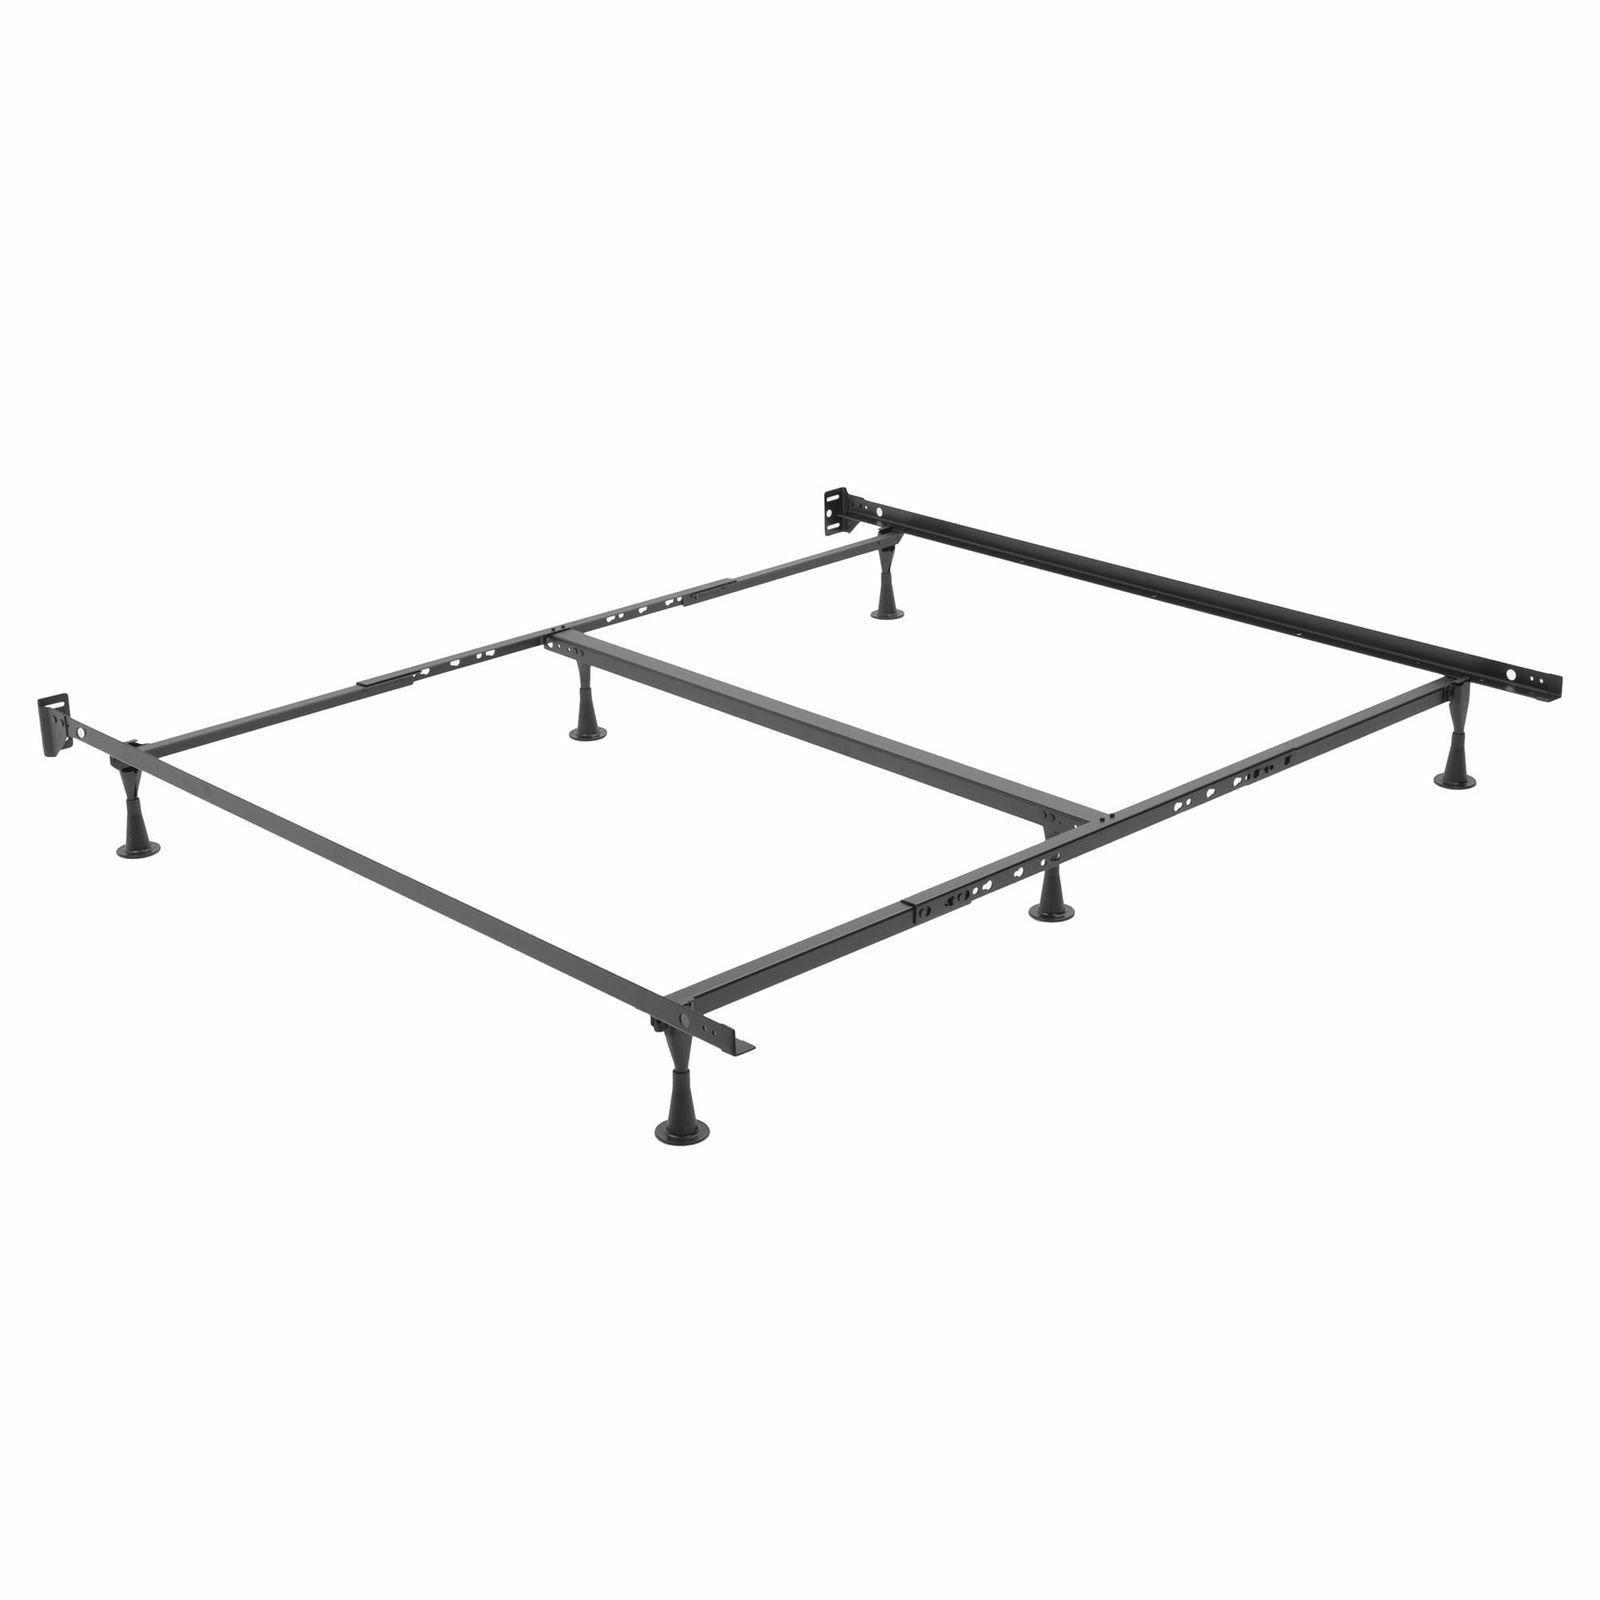 FBG Restmore Bed Frame, Universal Size - 426255